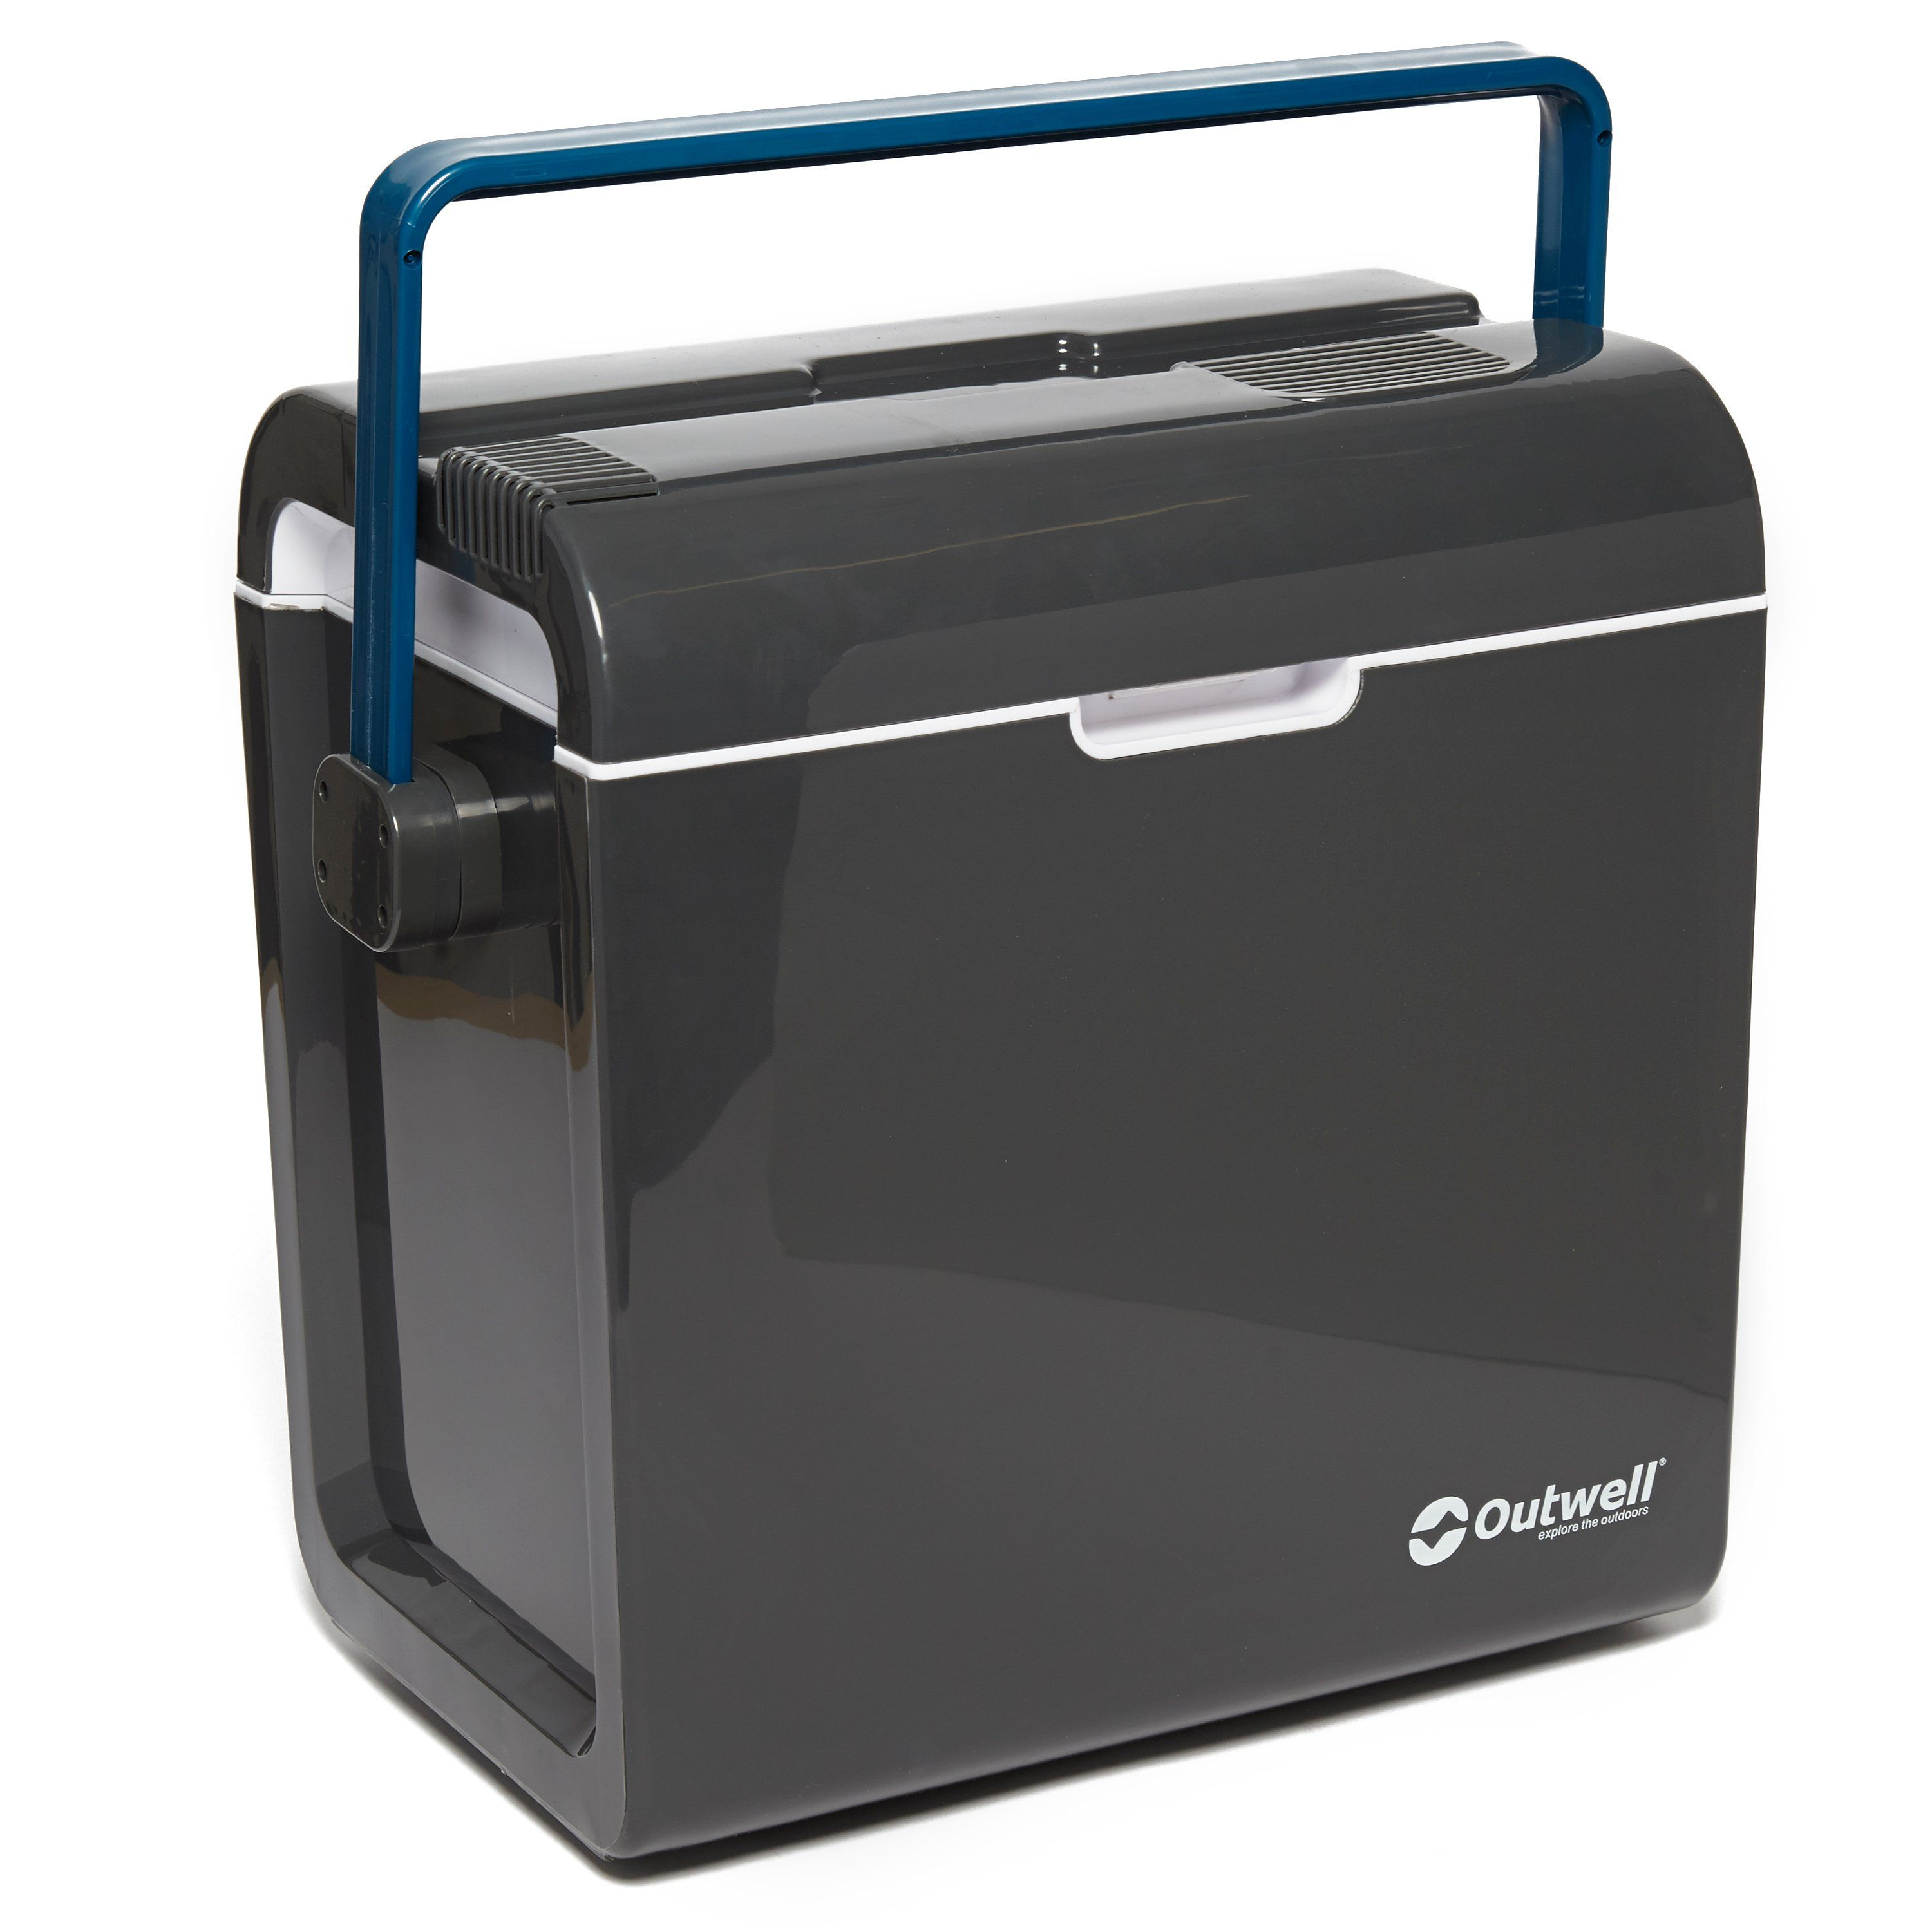 OUTWELL ECOcool 24 Litre 12v Cool Box